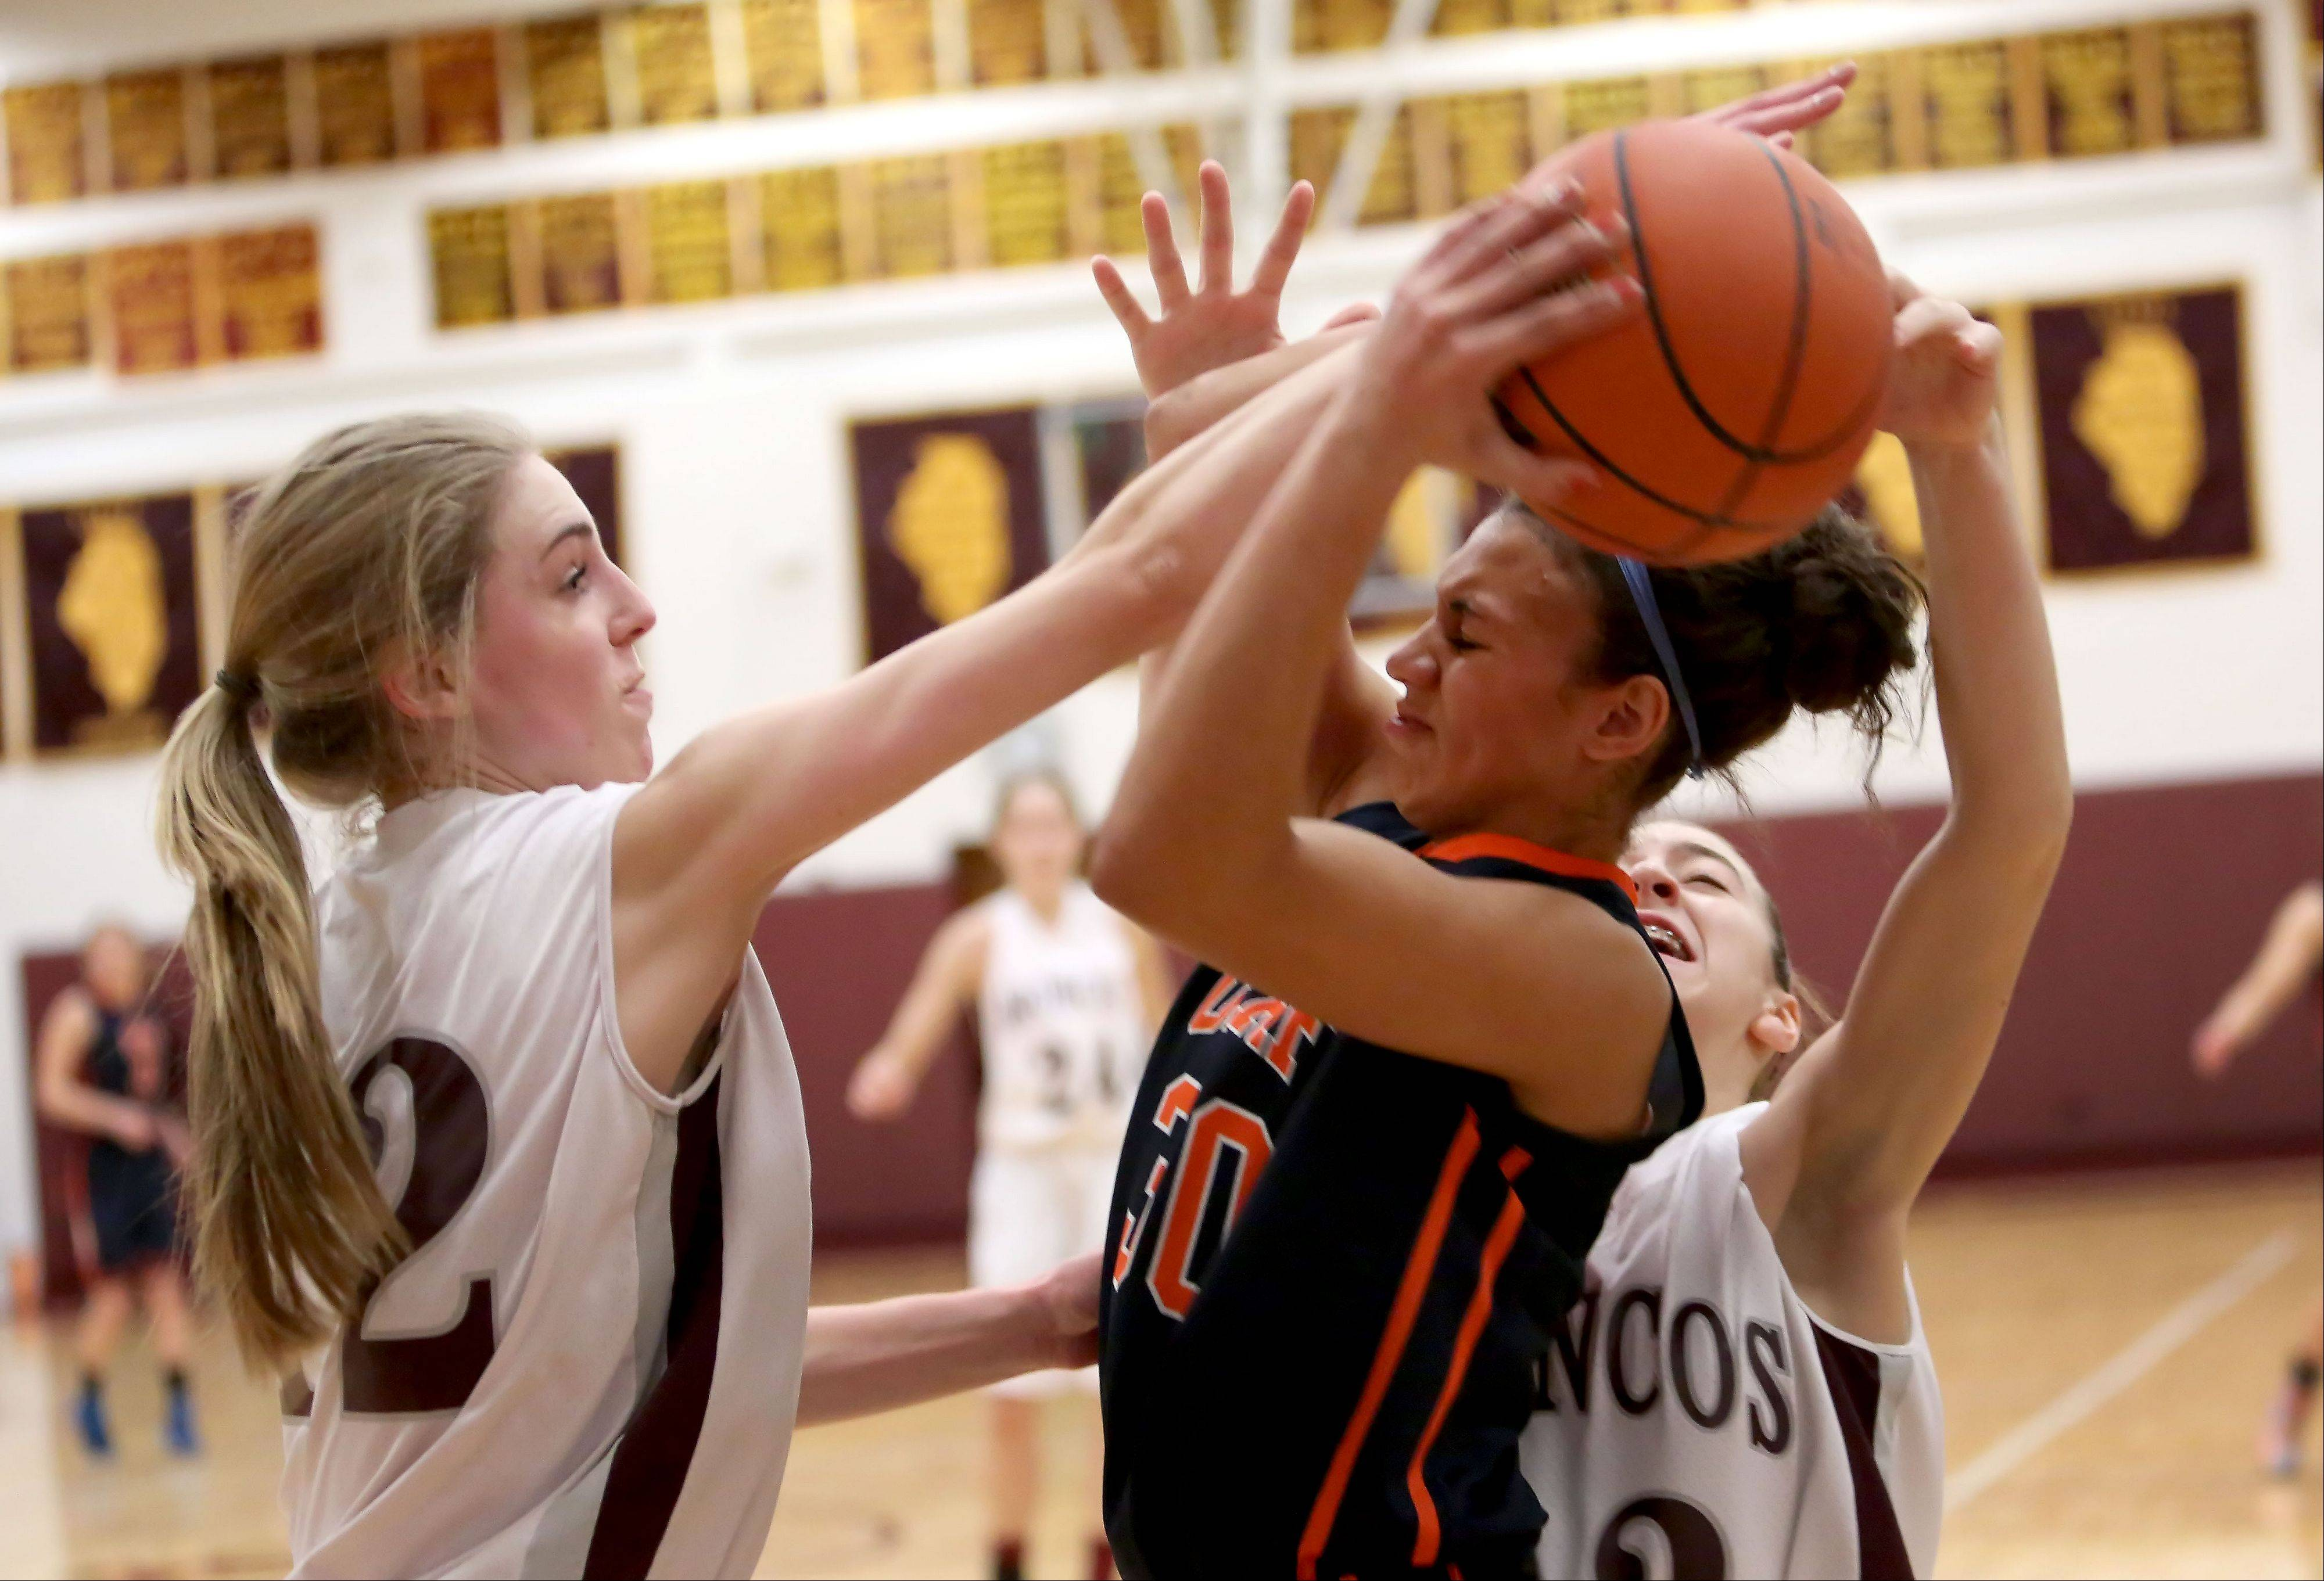 Kelly Karlis, left, and Claudia Kunzer, right, of Montini put the pressure on Chardonnay Harris of Oak Park River Forest.